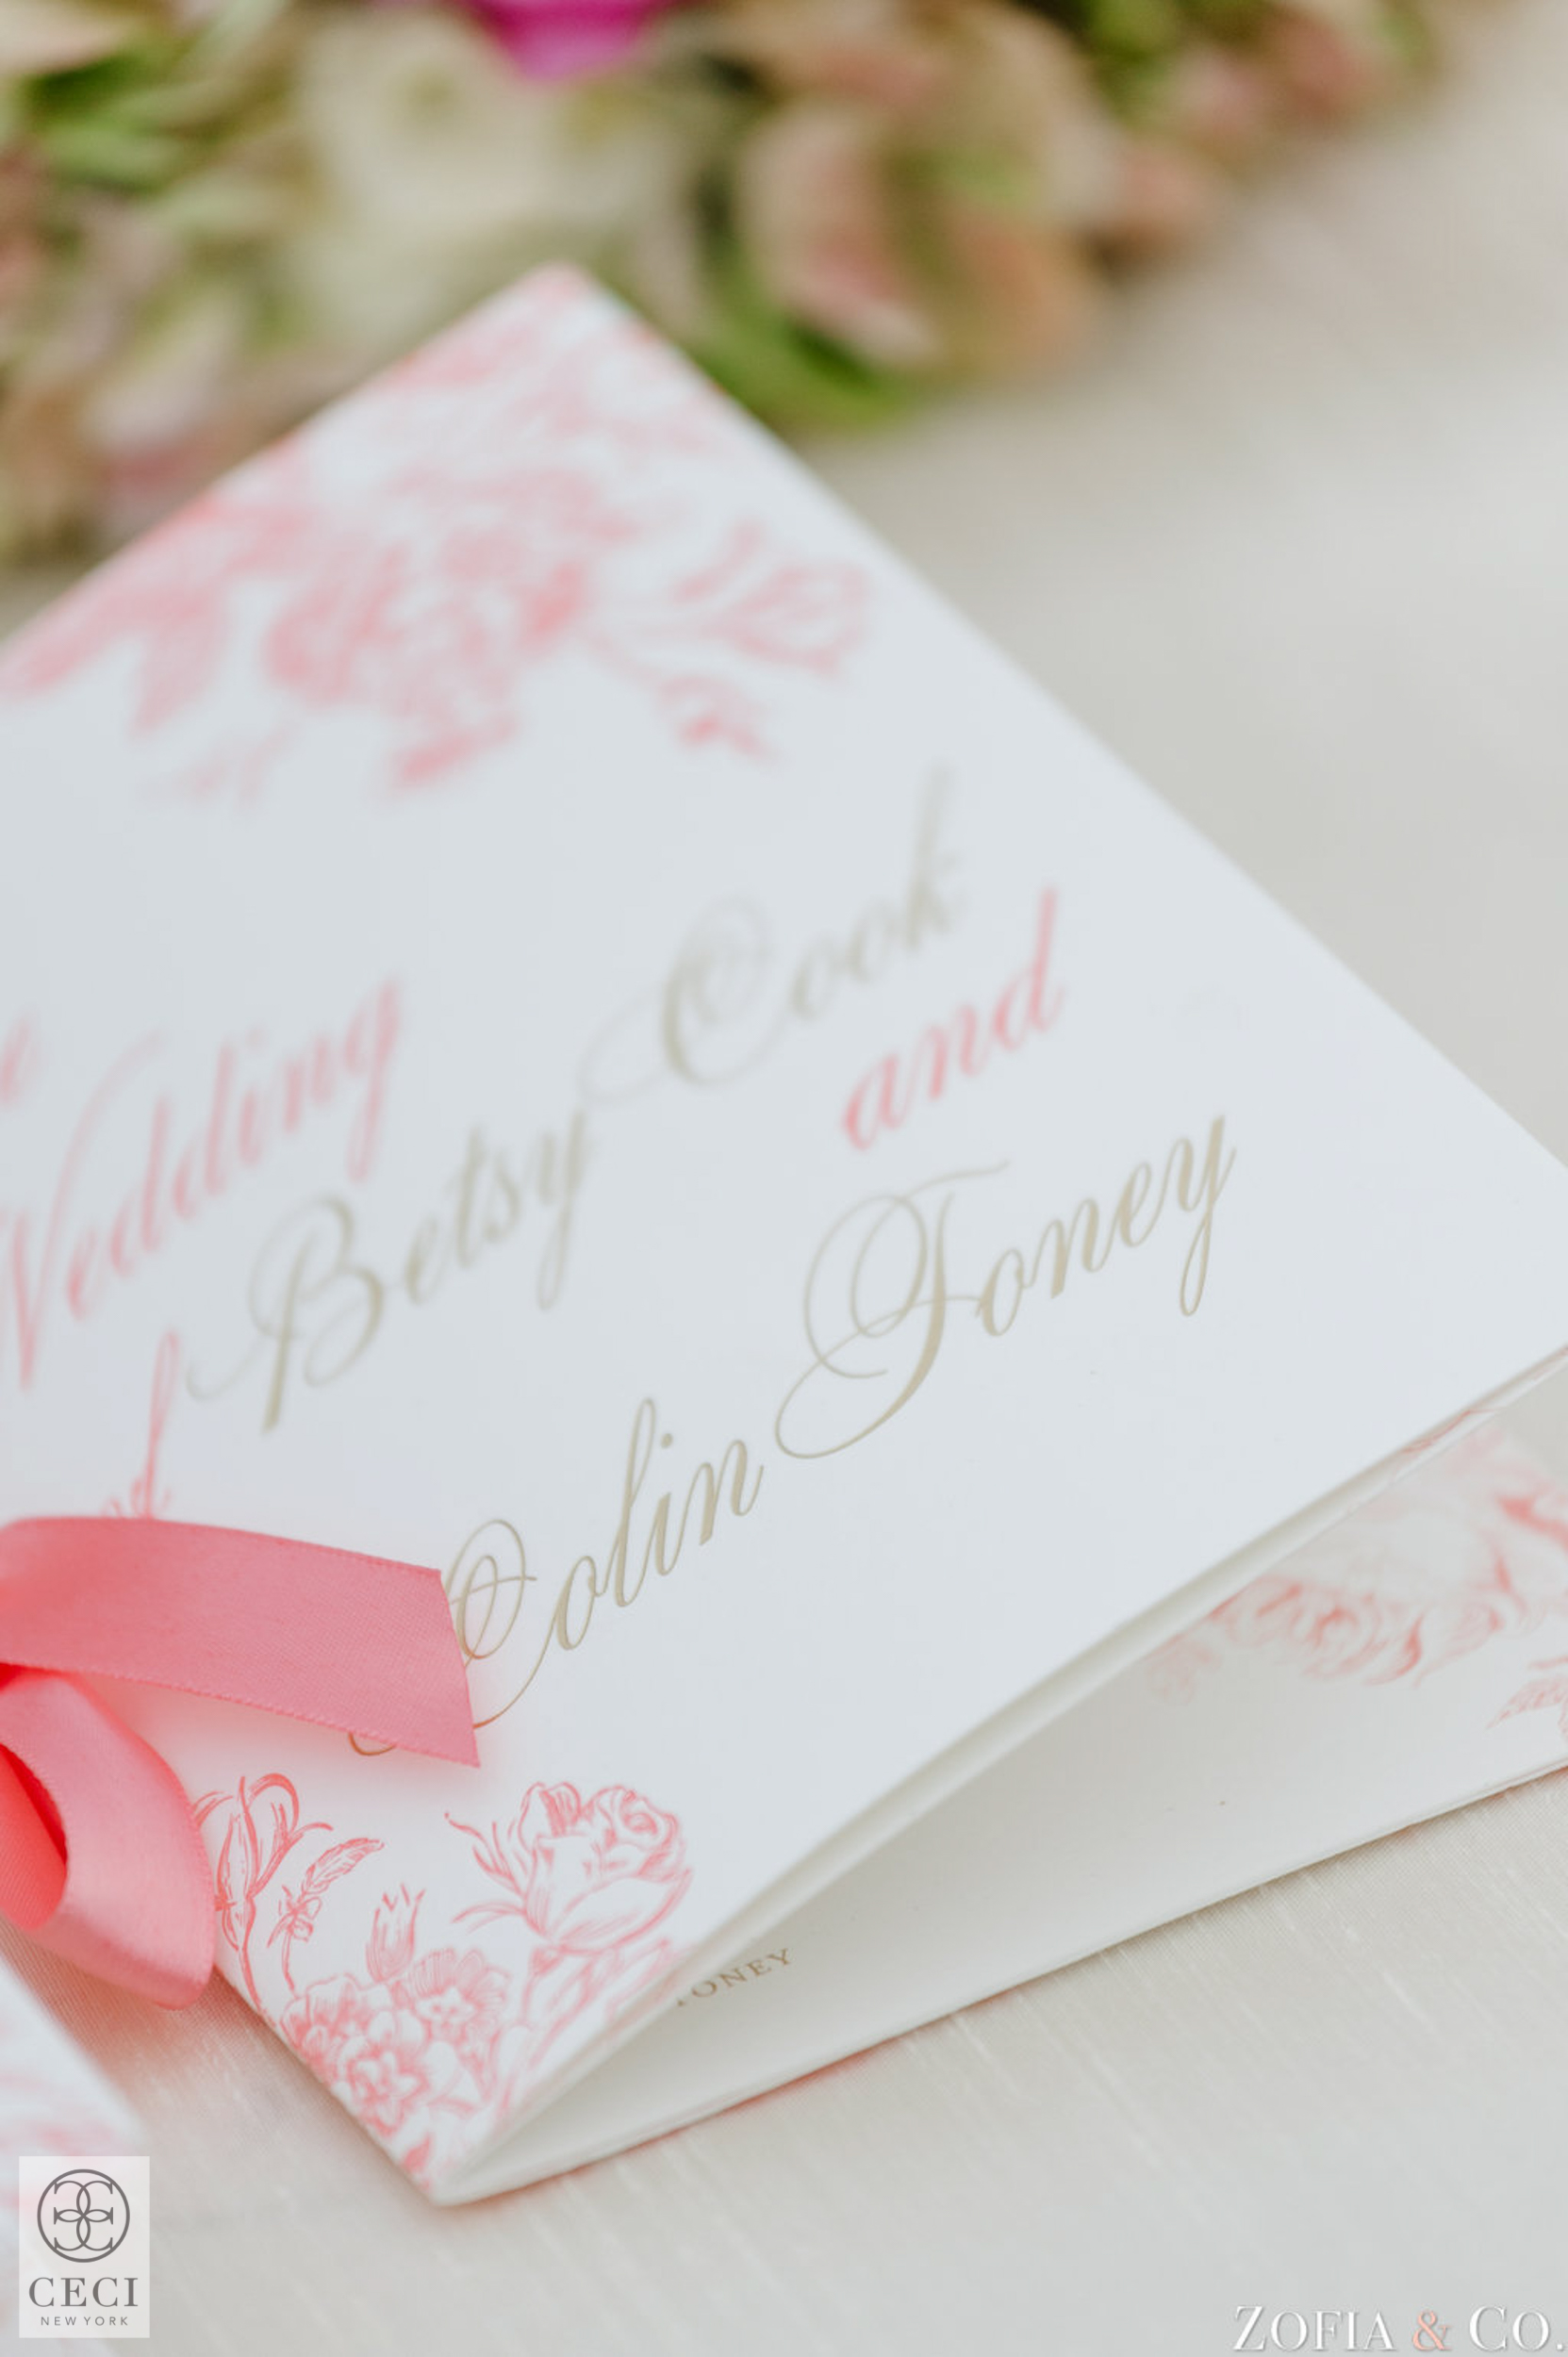 Ceci_New_York_Custom_Luxury_Wedding_LaserCut_Stationery_Personalized_Couture_Foil_Stamping_Black_Chic_-9 copy.jpg